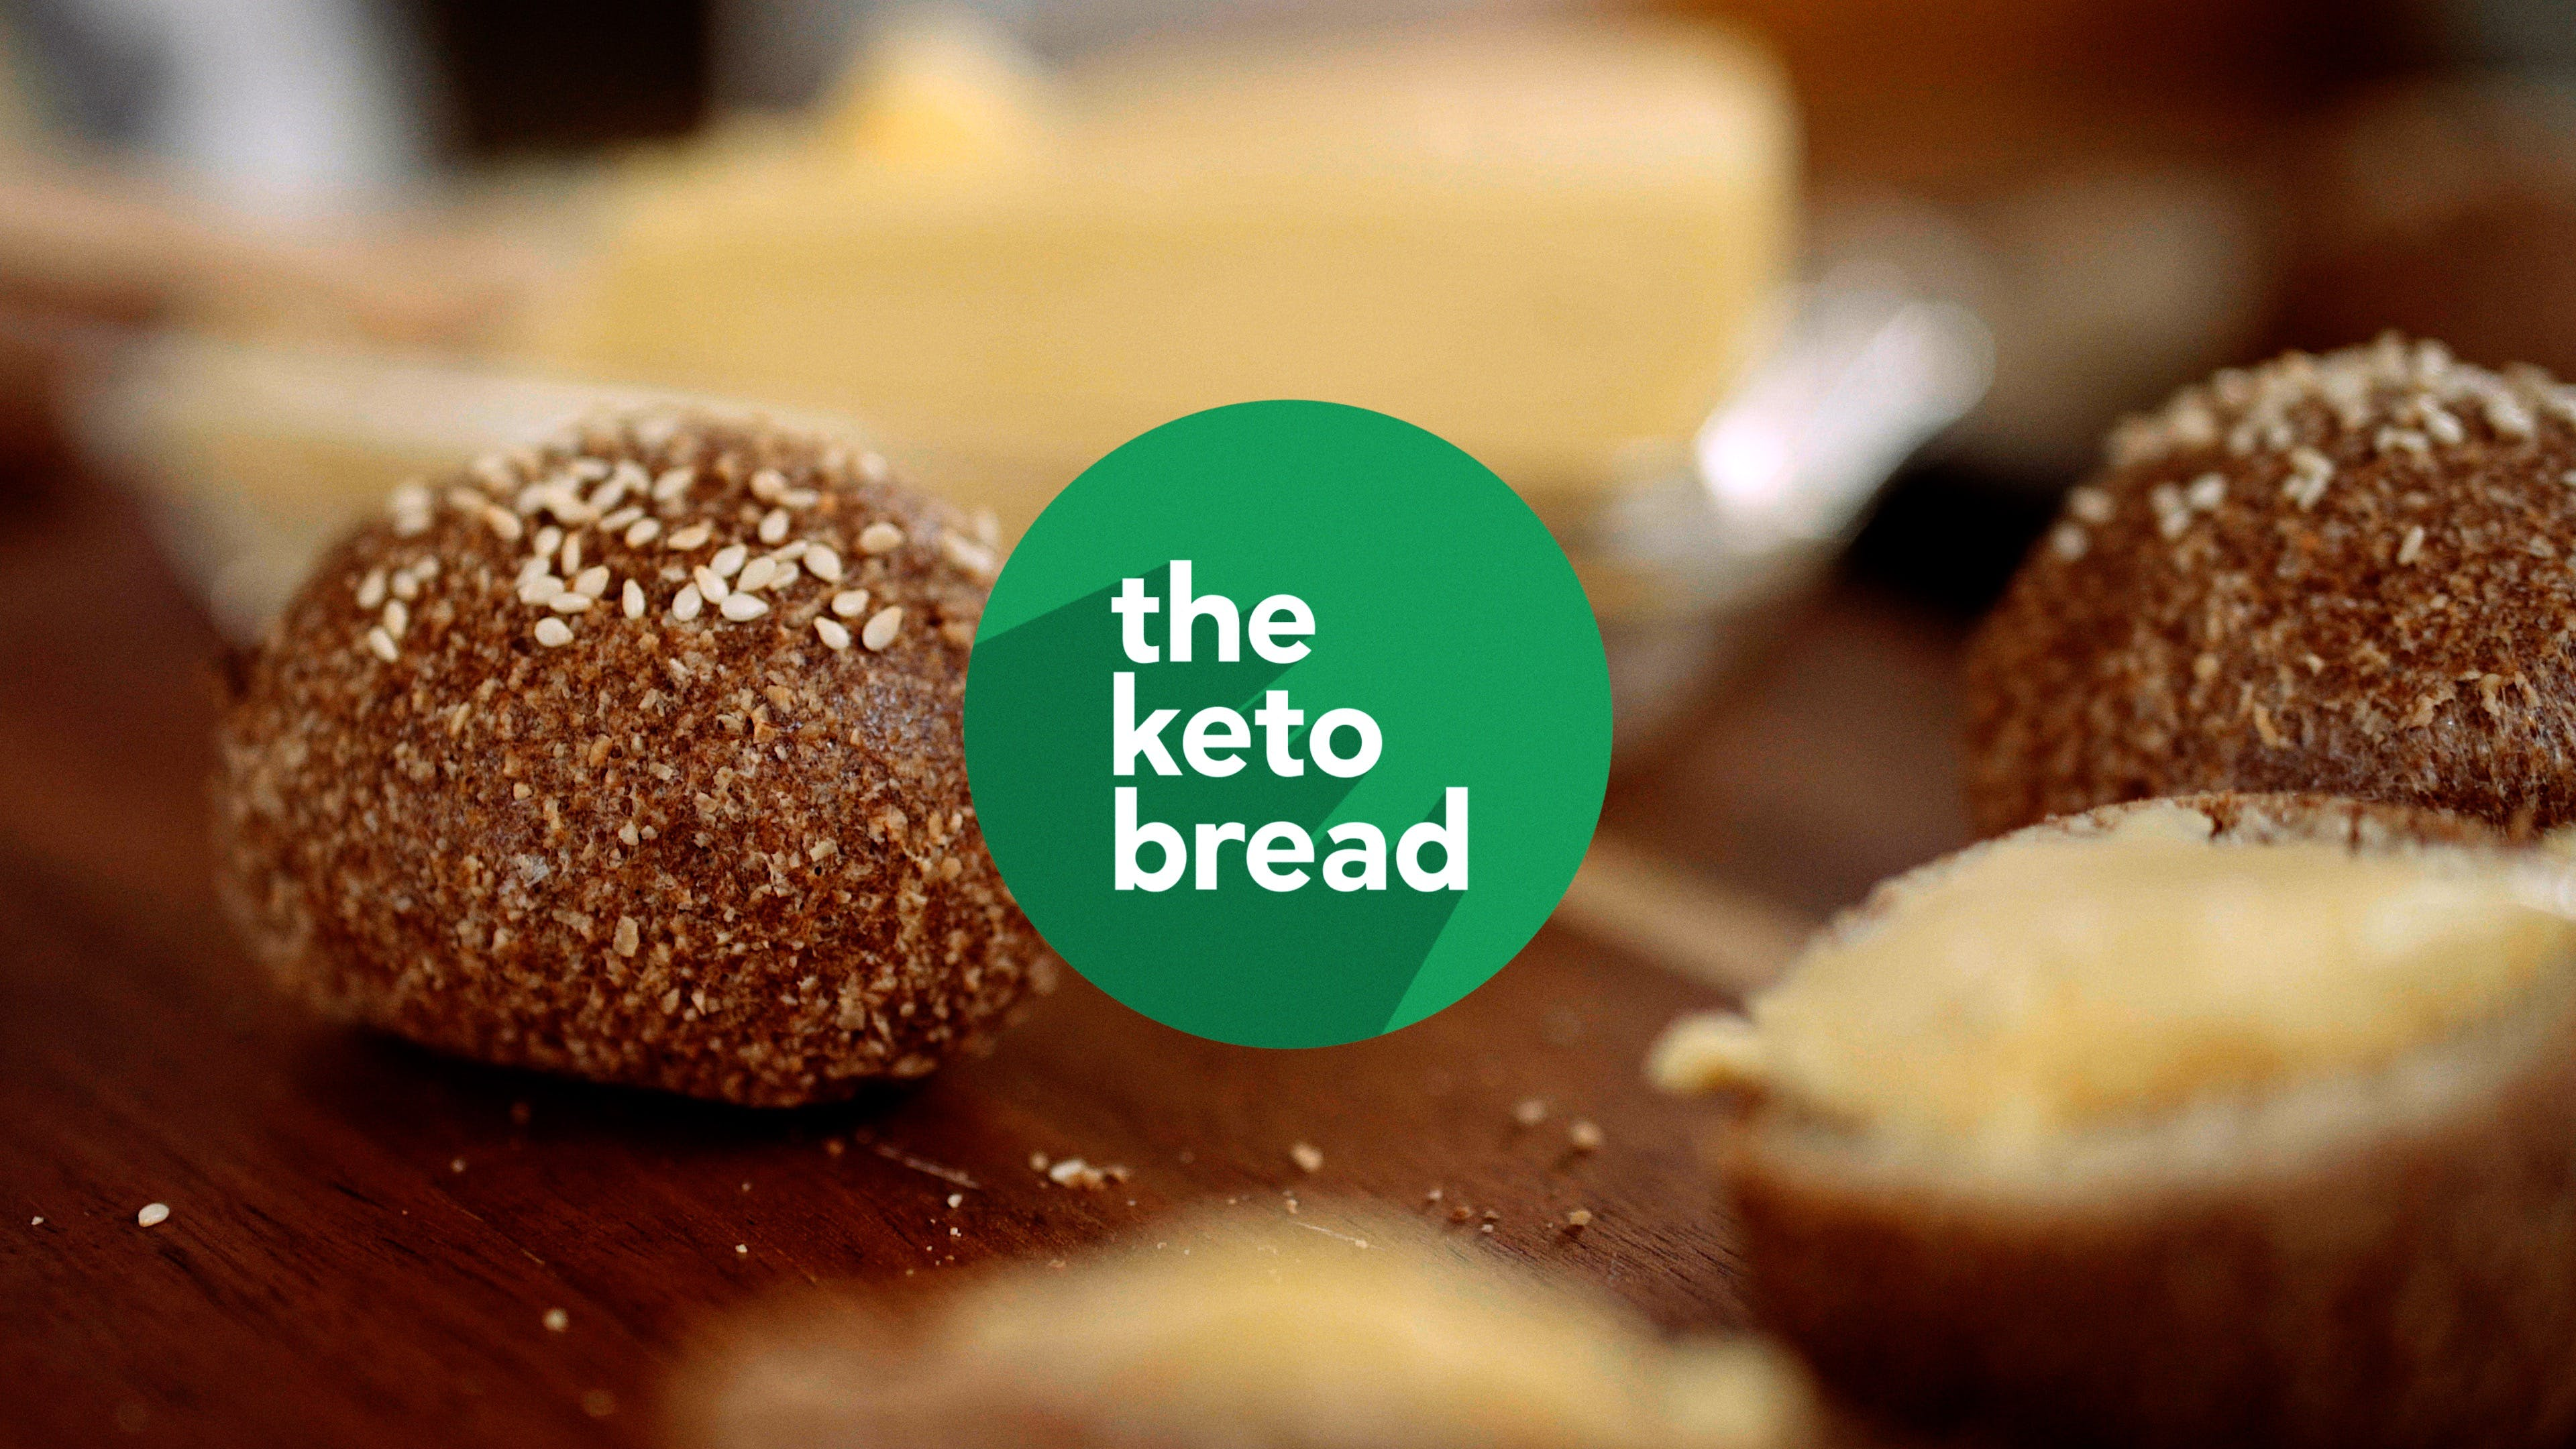 The keto bread